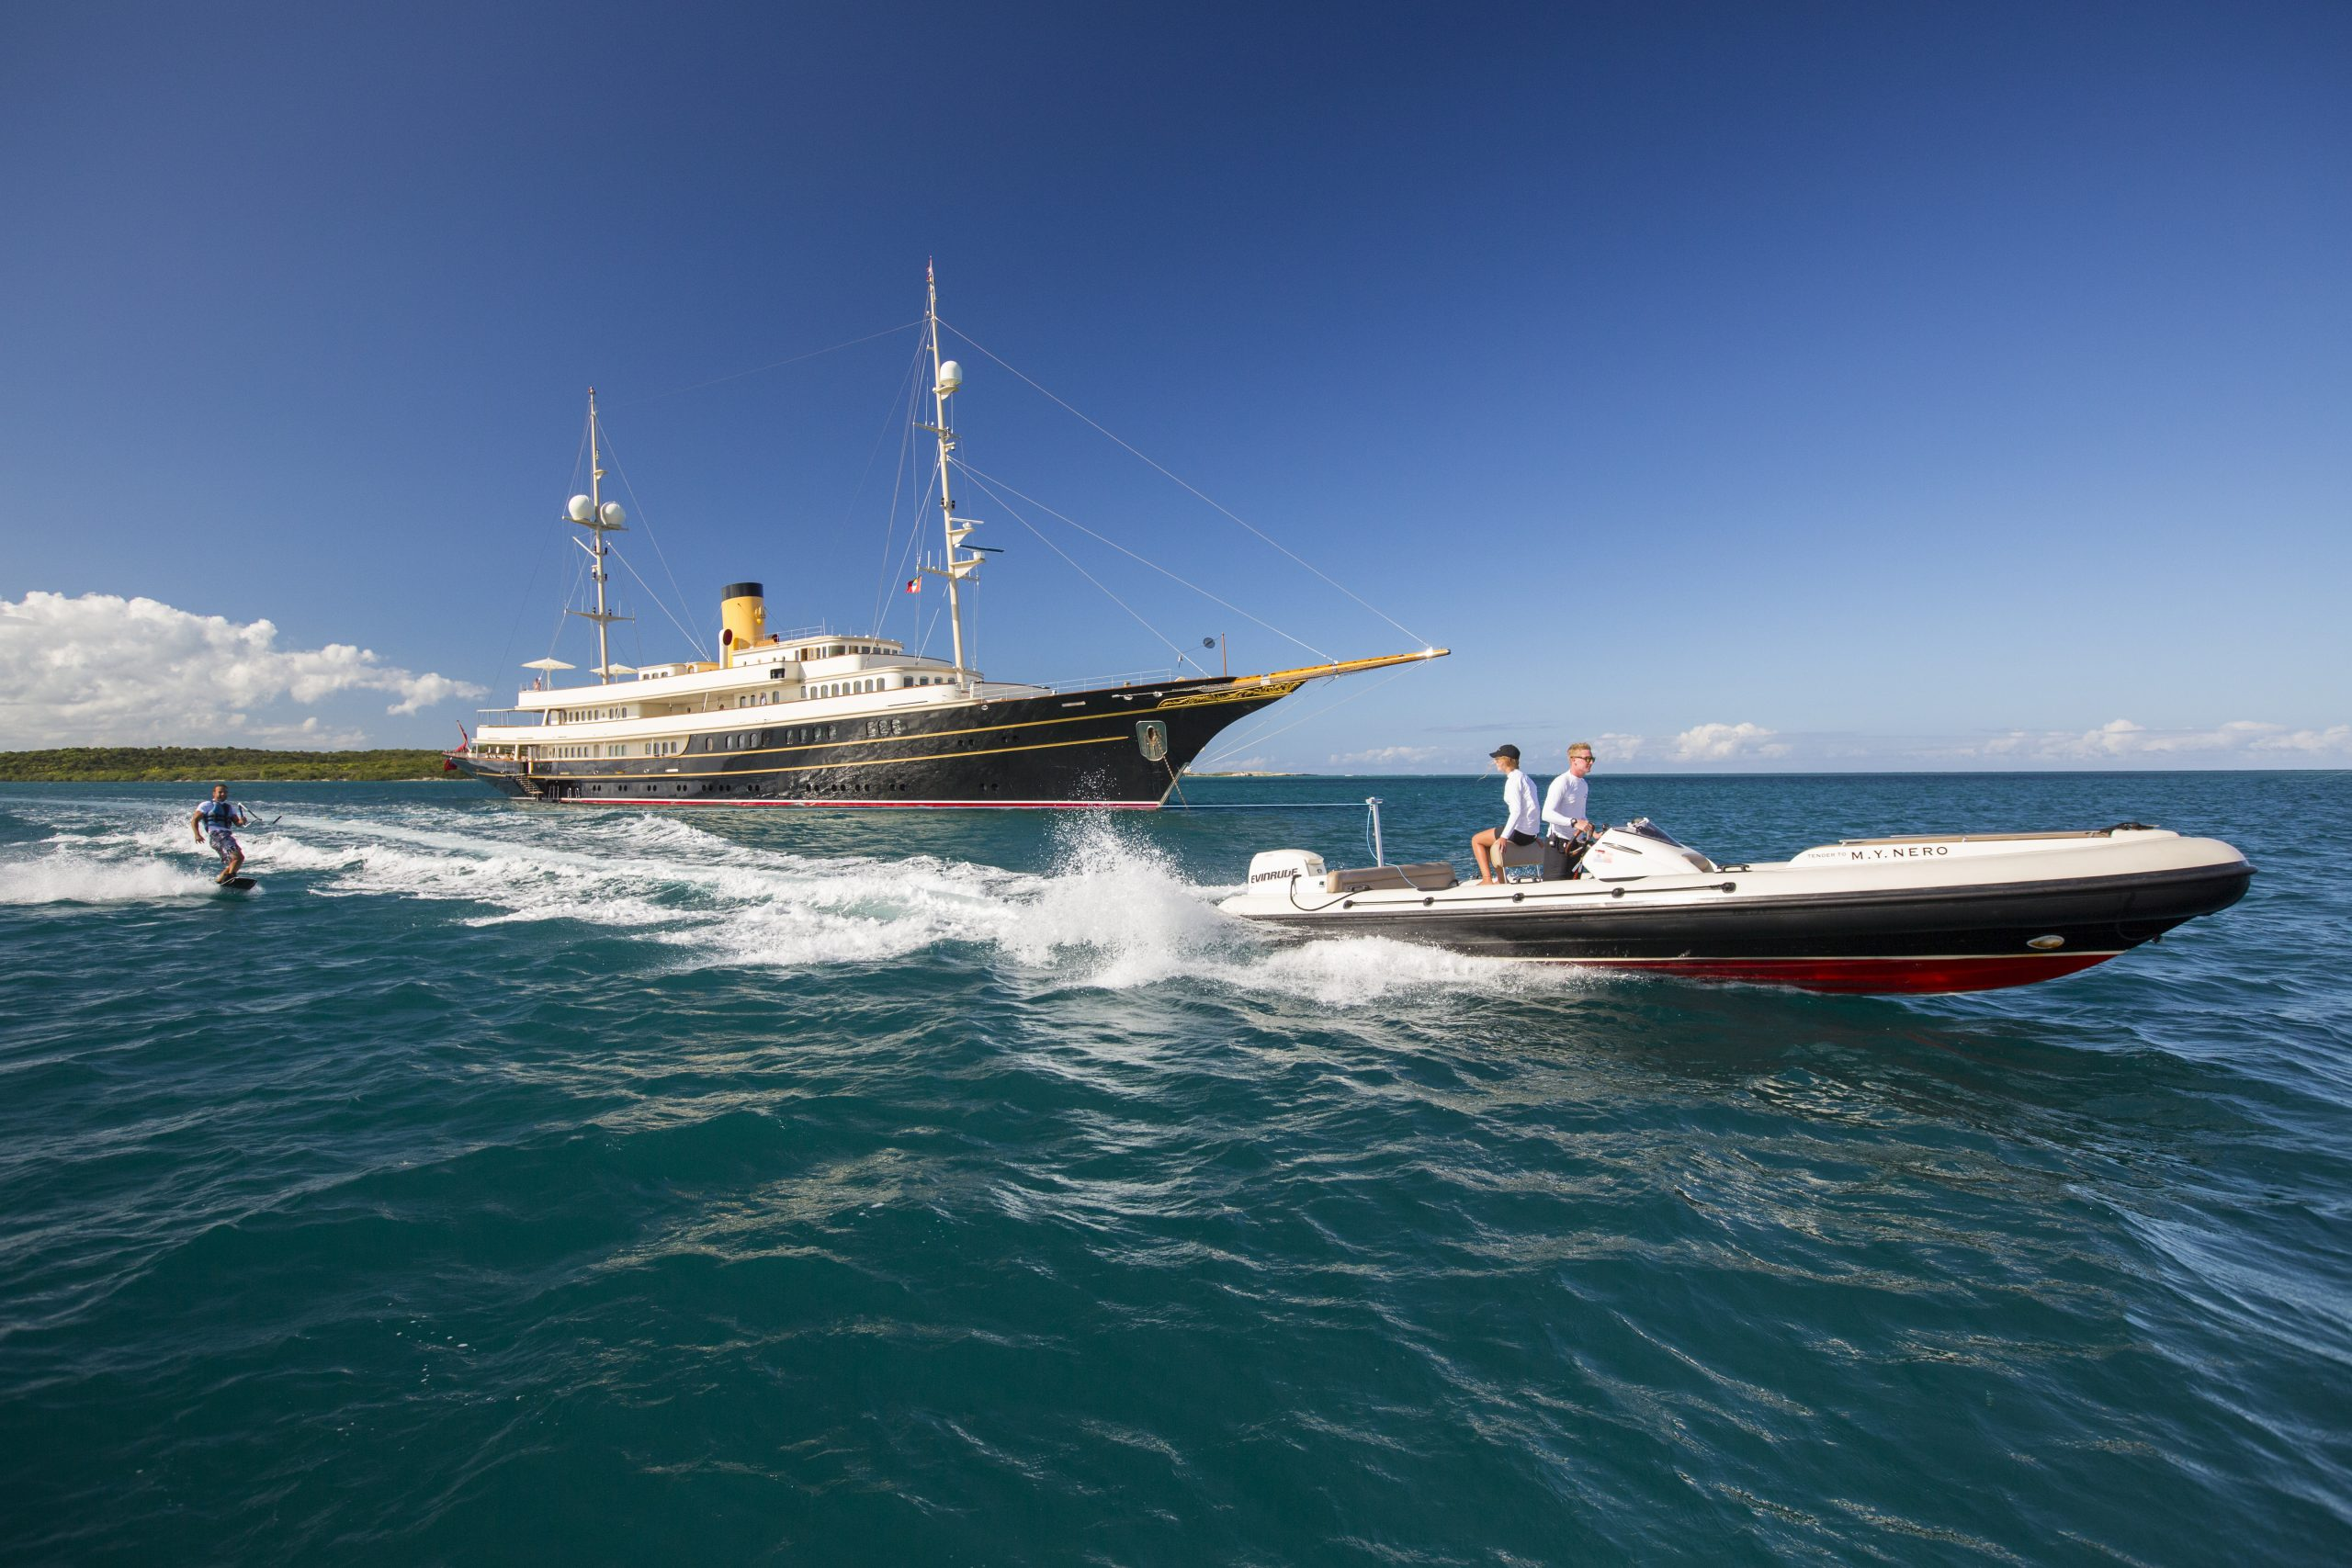 The rebound of the yachting industry